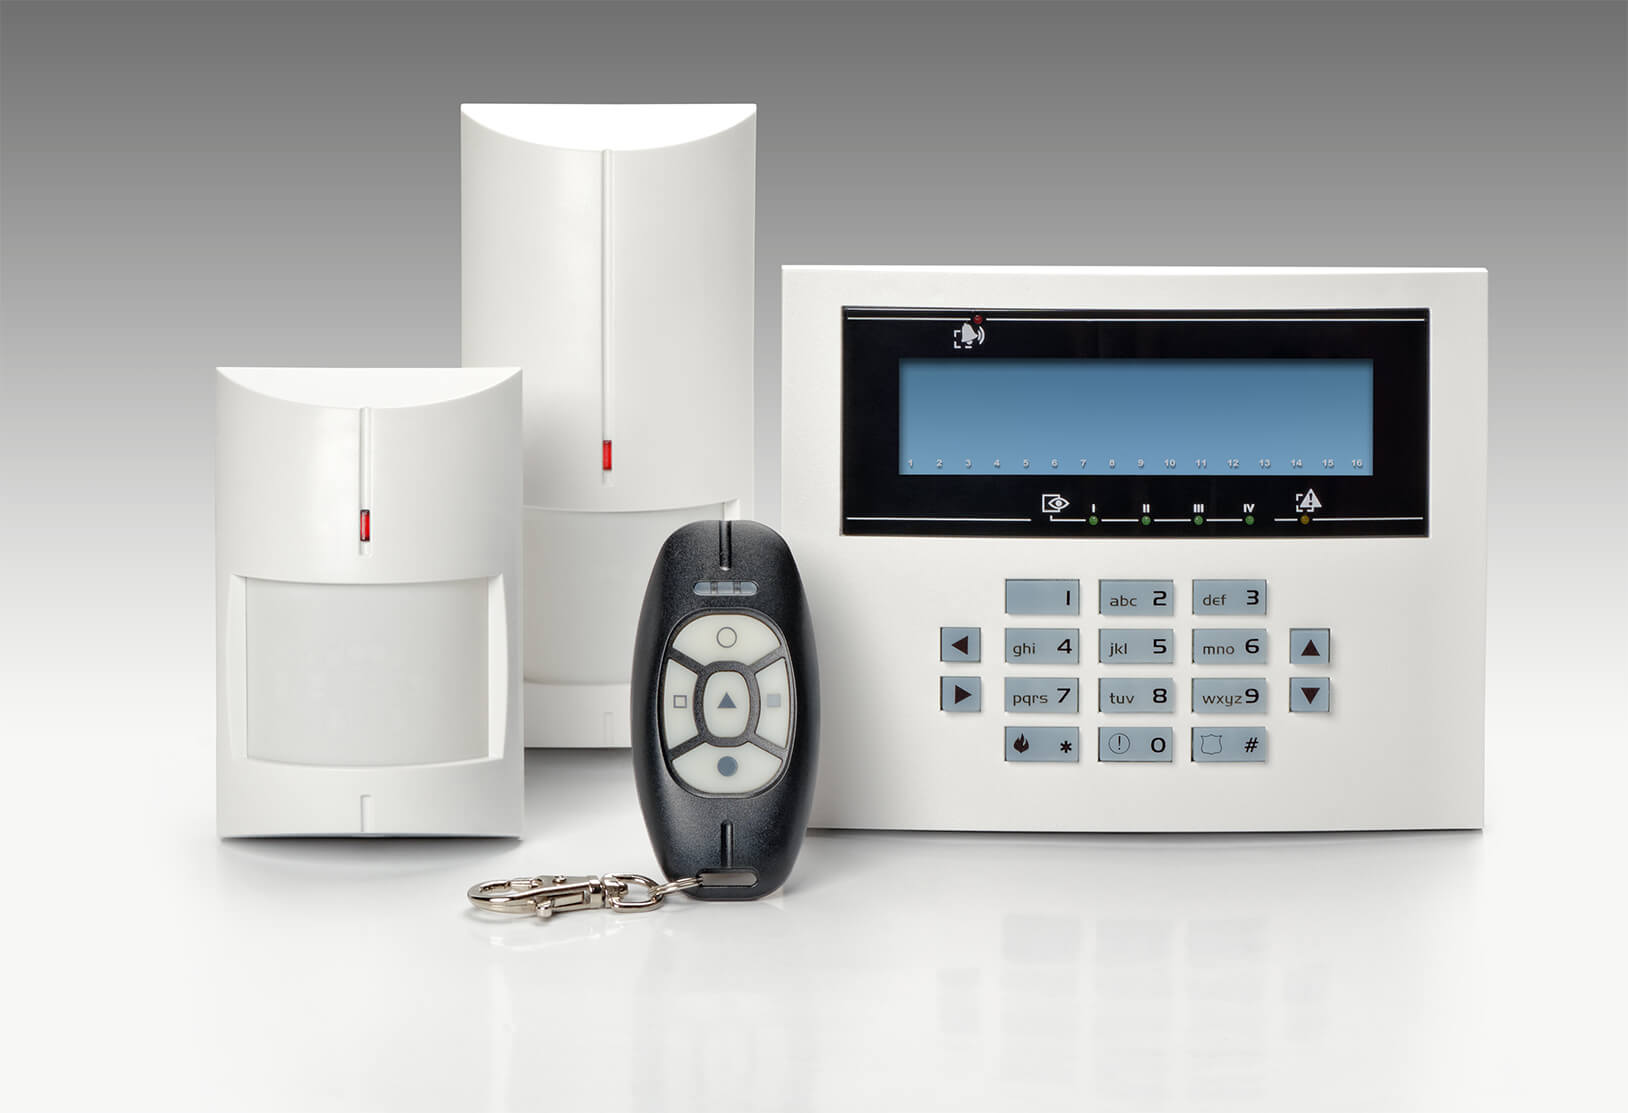 Burglar Alarms  in Newham IG11 - Local Newham IG11 alarm engineers.Call 02078872244 - SEE PRICE of Burglar Alarms  in Newham IG11 and book your alarm engineer. No Hidden charges,No Contracts, Book as you need.Engineers on demand.All alarm makes repaired.Same day service ability.